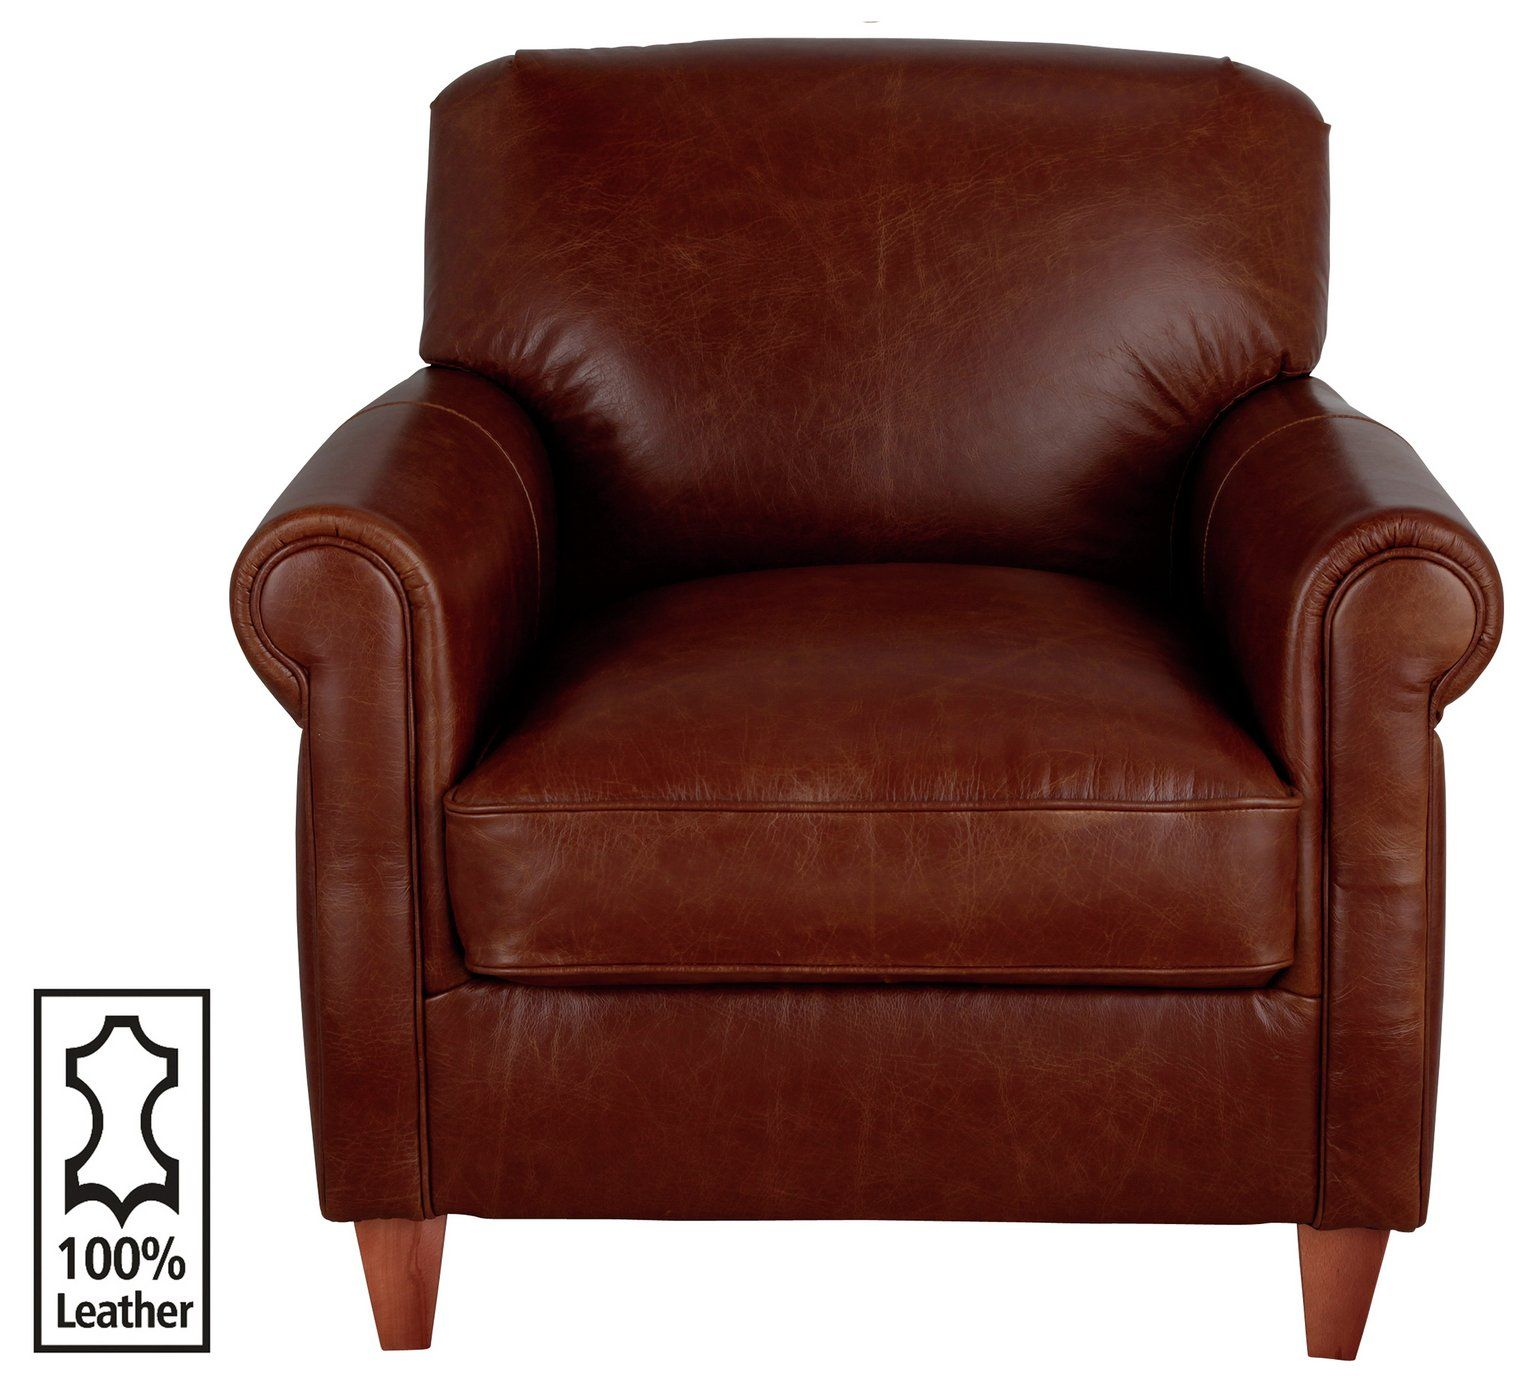 Buy Heart Of House Kingsley Leather Club Chair Tan At Argos Co Uk